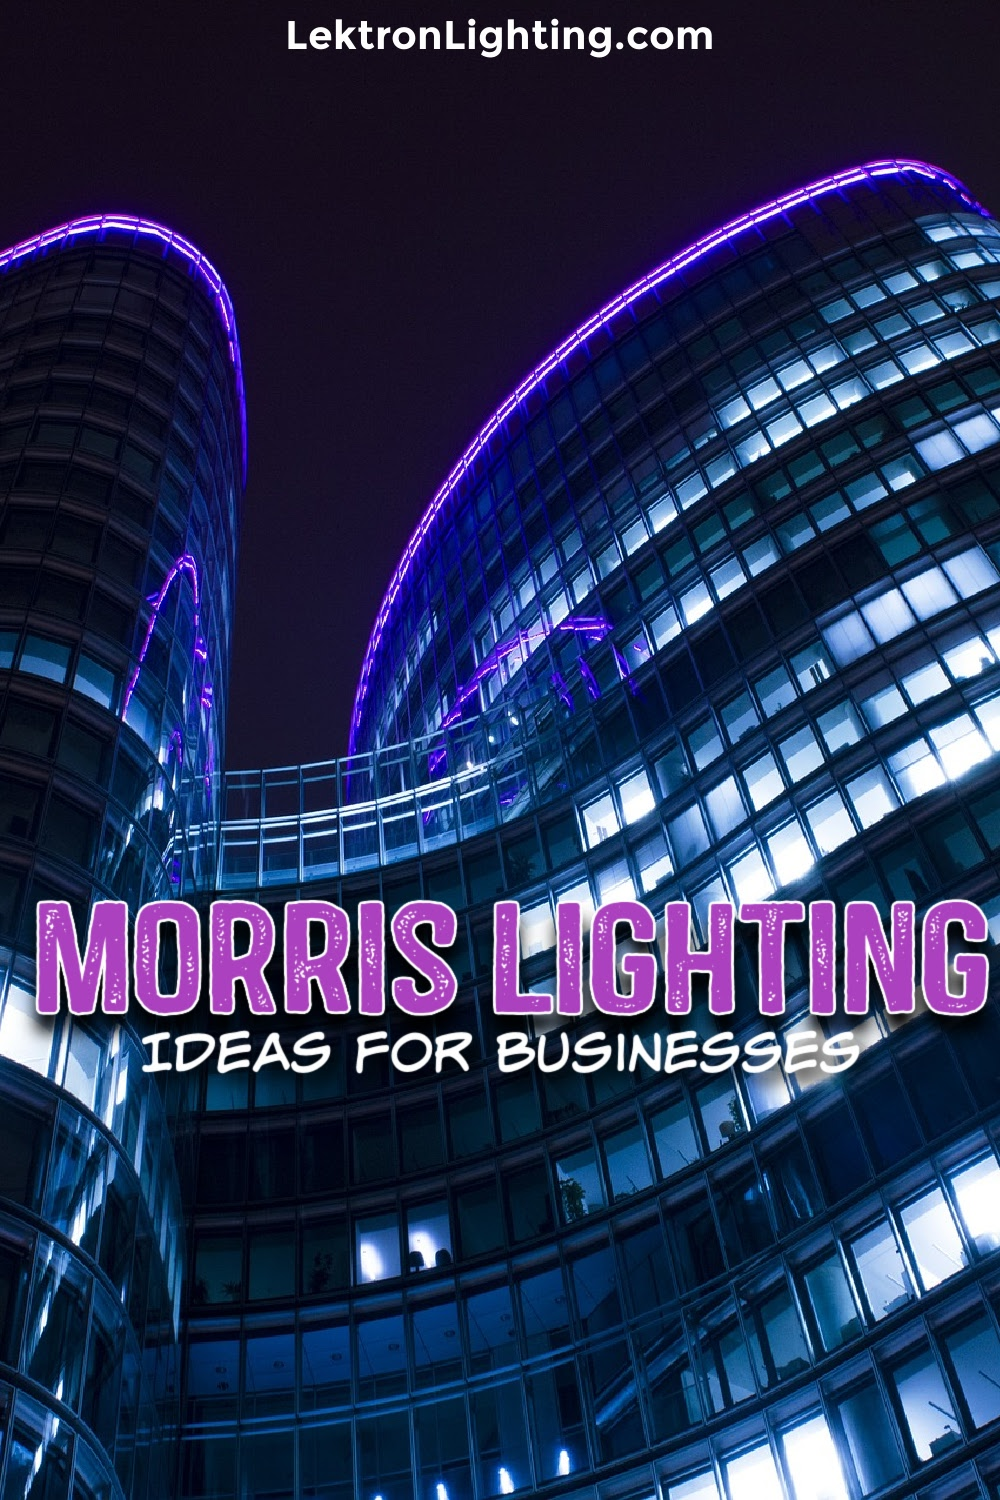 Morris lighting installation ideas can help make upgrading the lighting in your home or business easier to handle no matter your skill level.